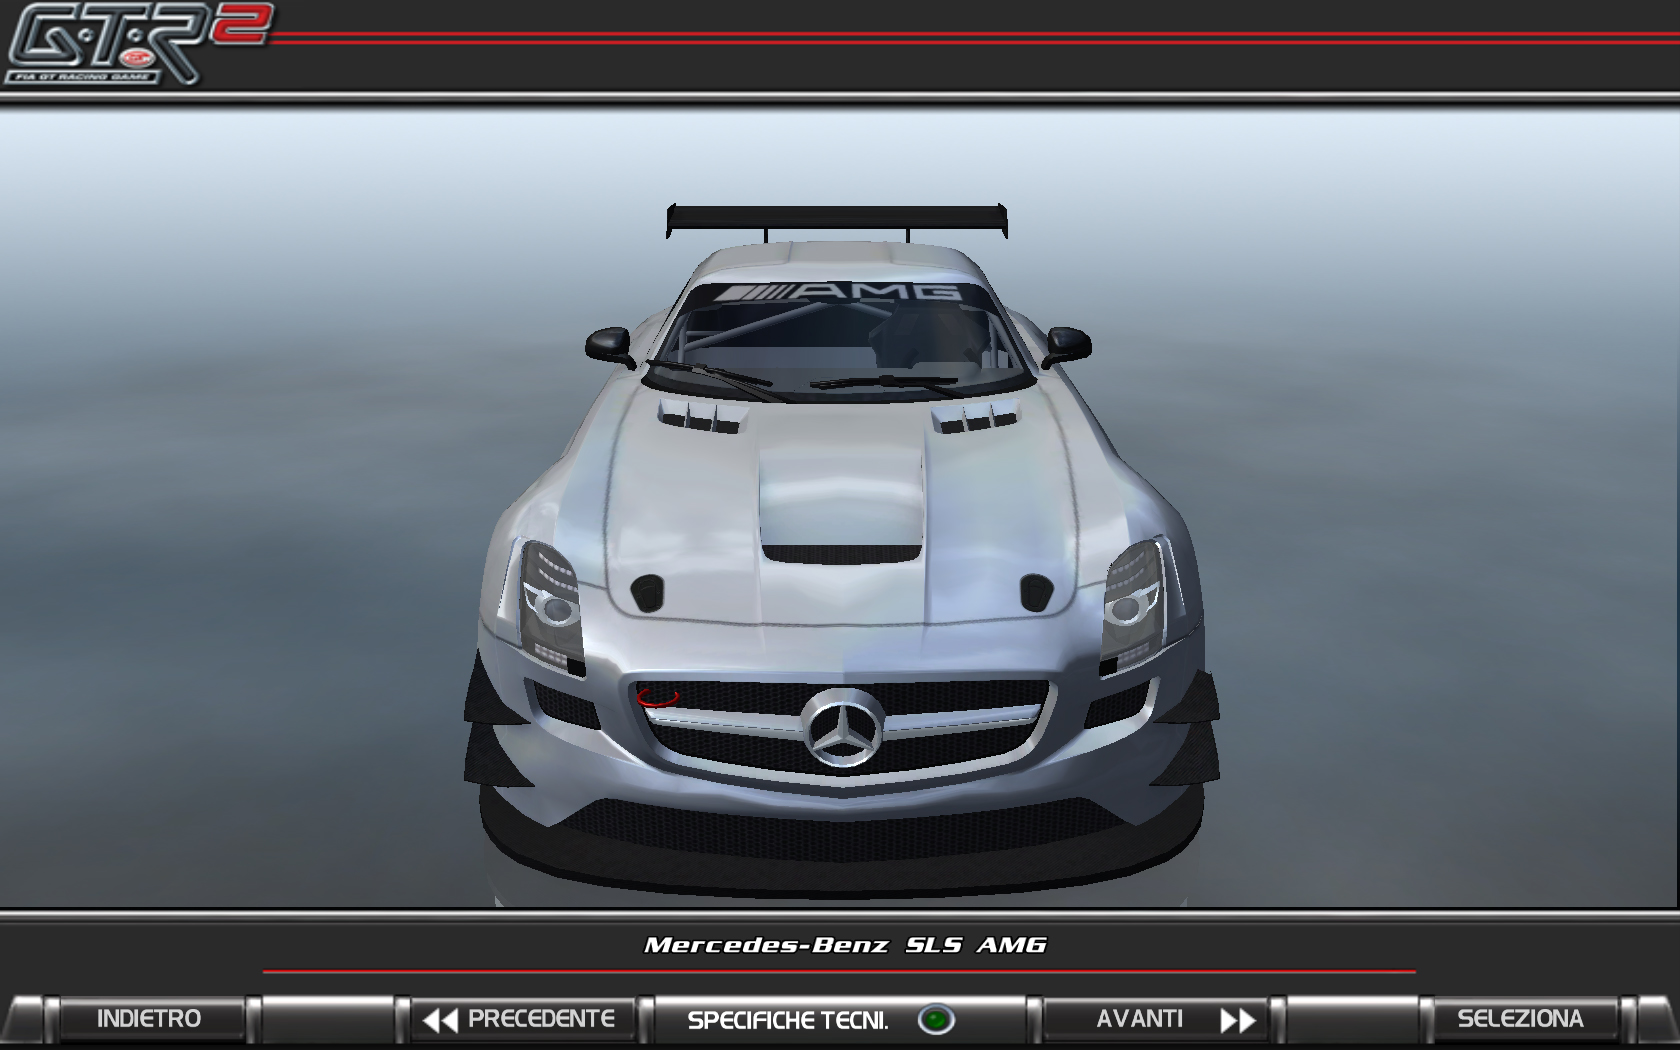 Project cars new mercedes amg gt3 previews virtualr sim racing - Sls_4